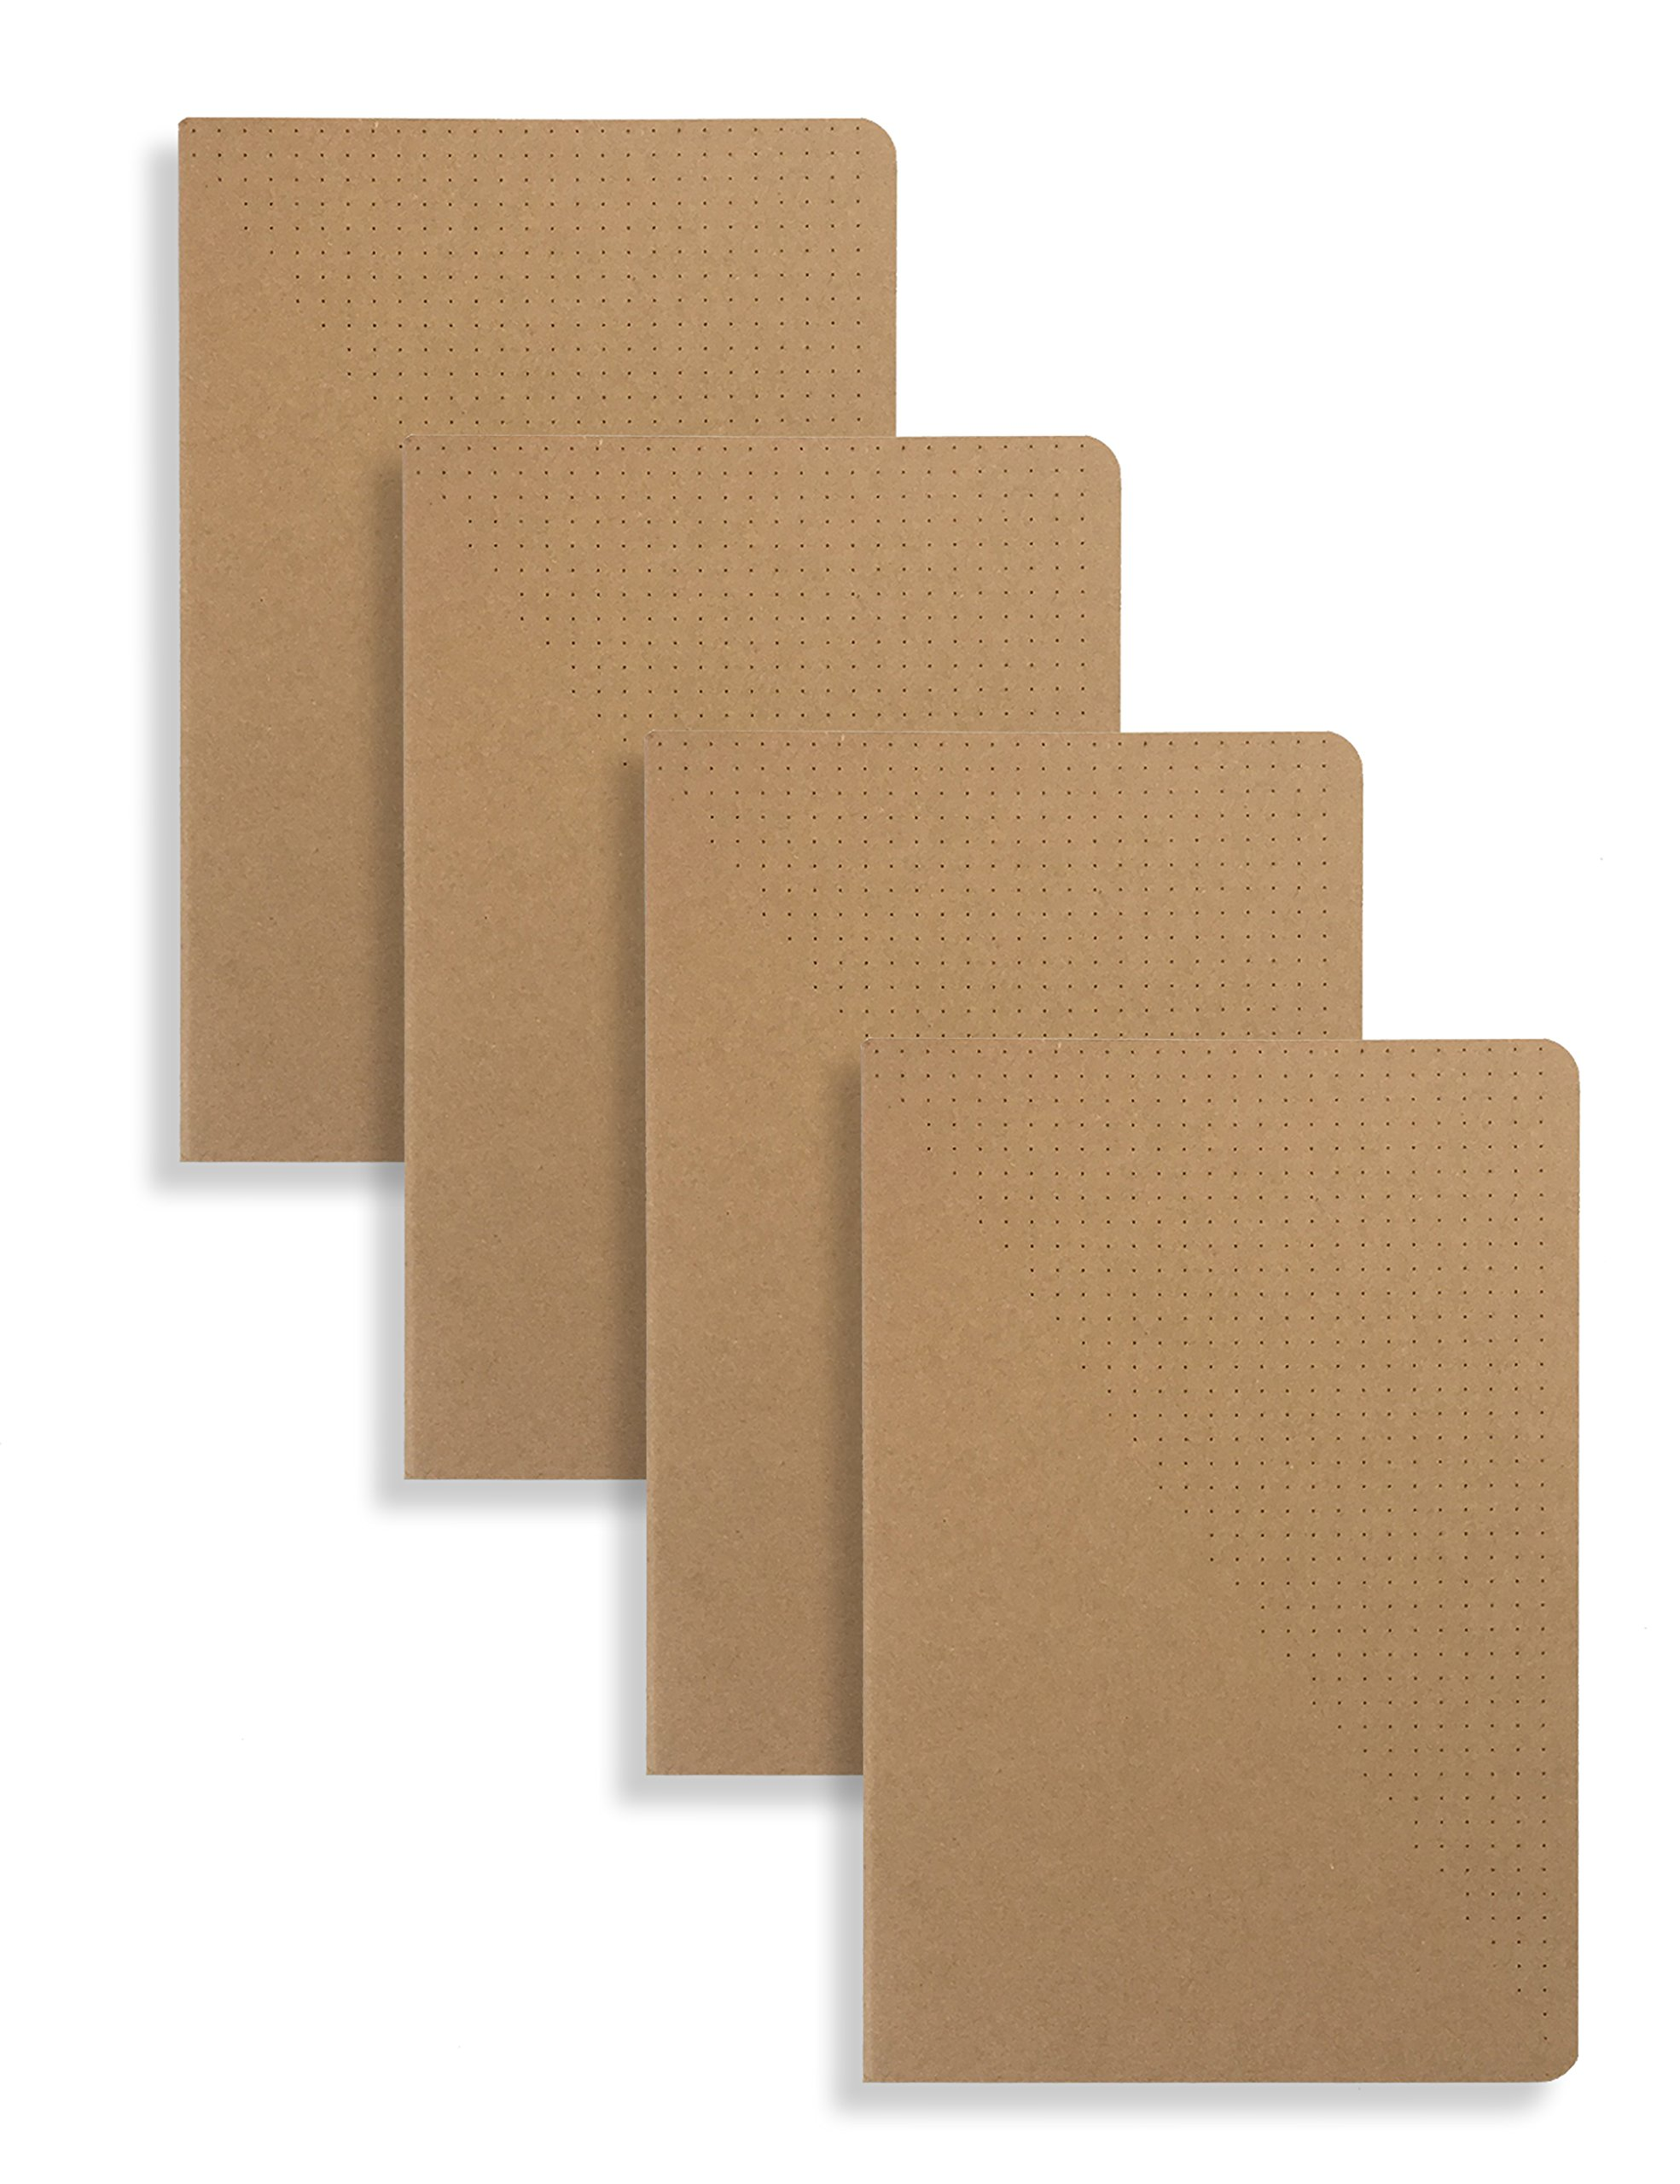 Miliko A5 Kraft Paper Series A5 Softcover Notebooks/Journals/Diary Set-4 Items Per Pack(Dot)